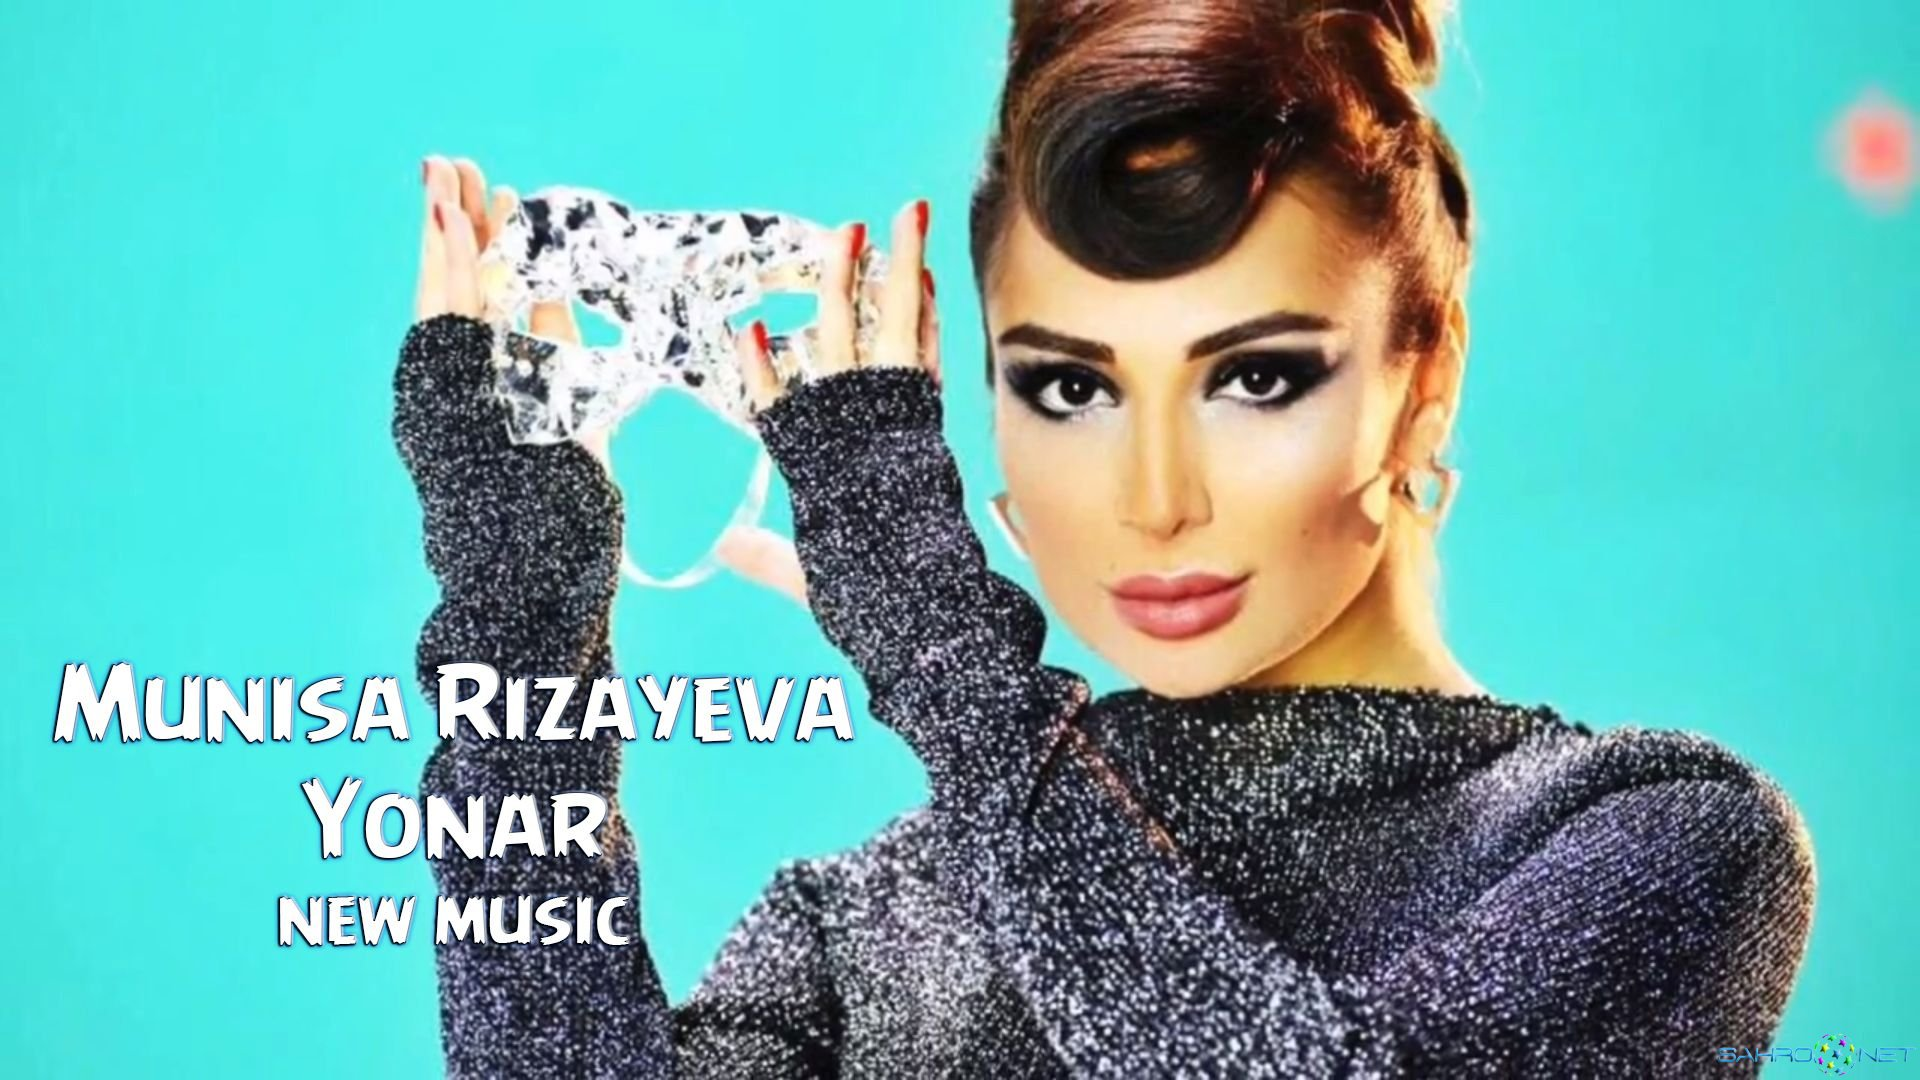 Munisa Rizayeva - Yonar (new music) 2015